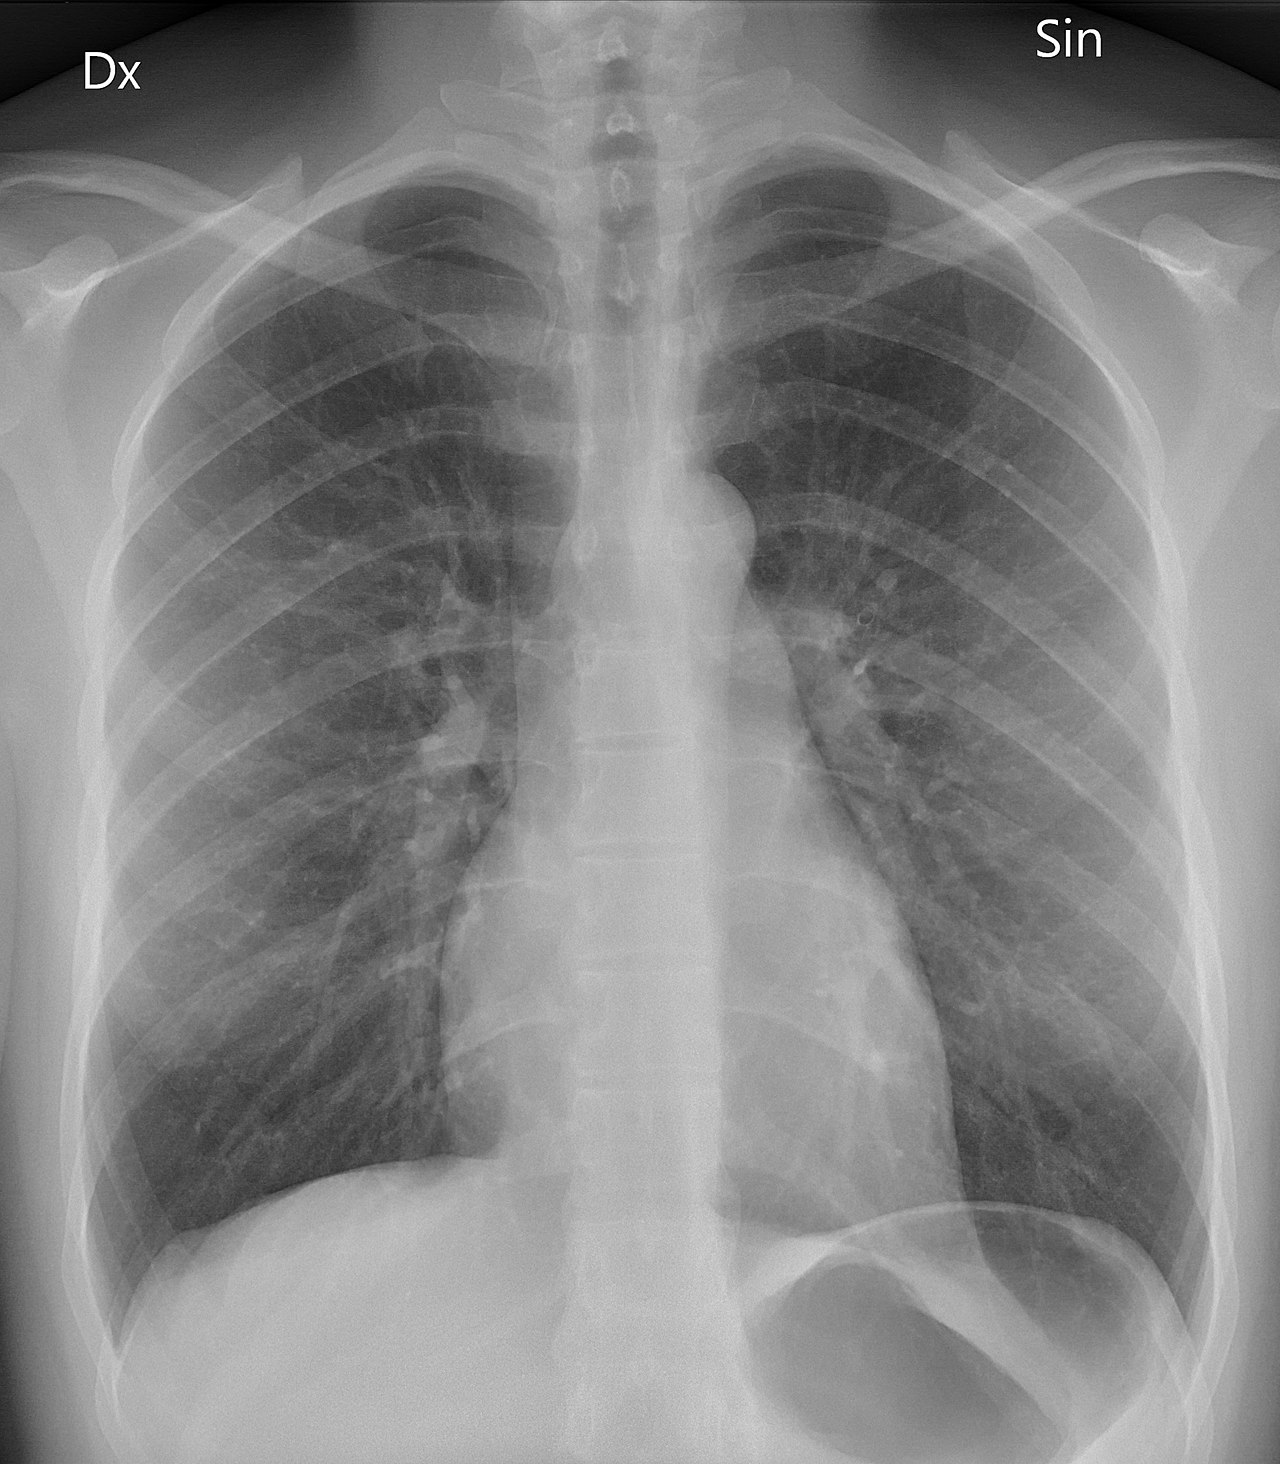 Chest radiographs of a coronavirus patient : China_Flu